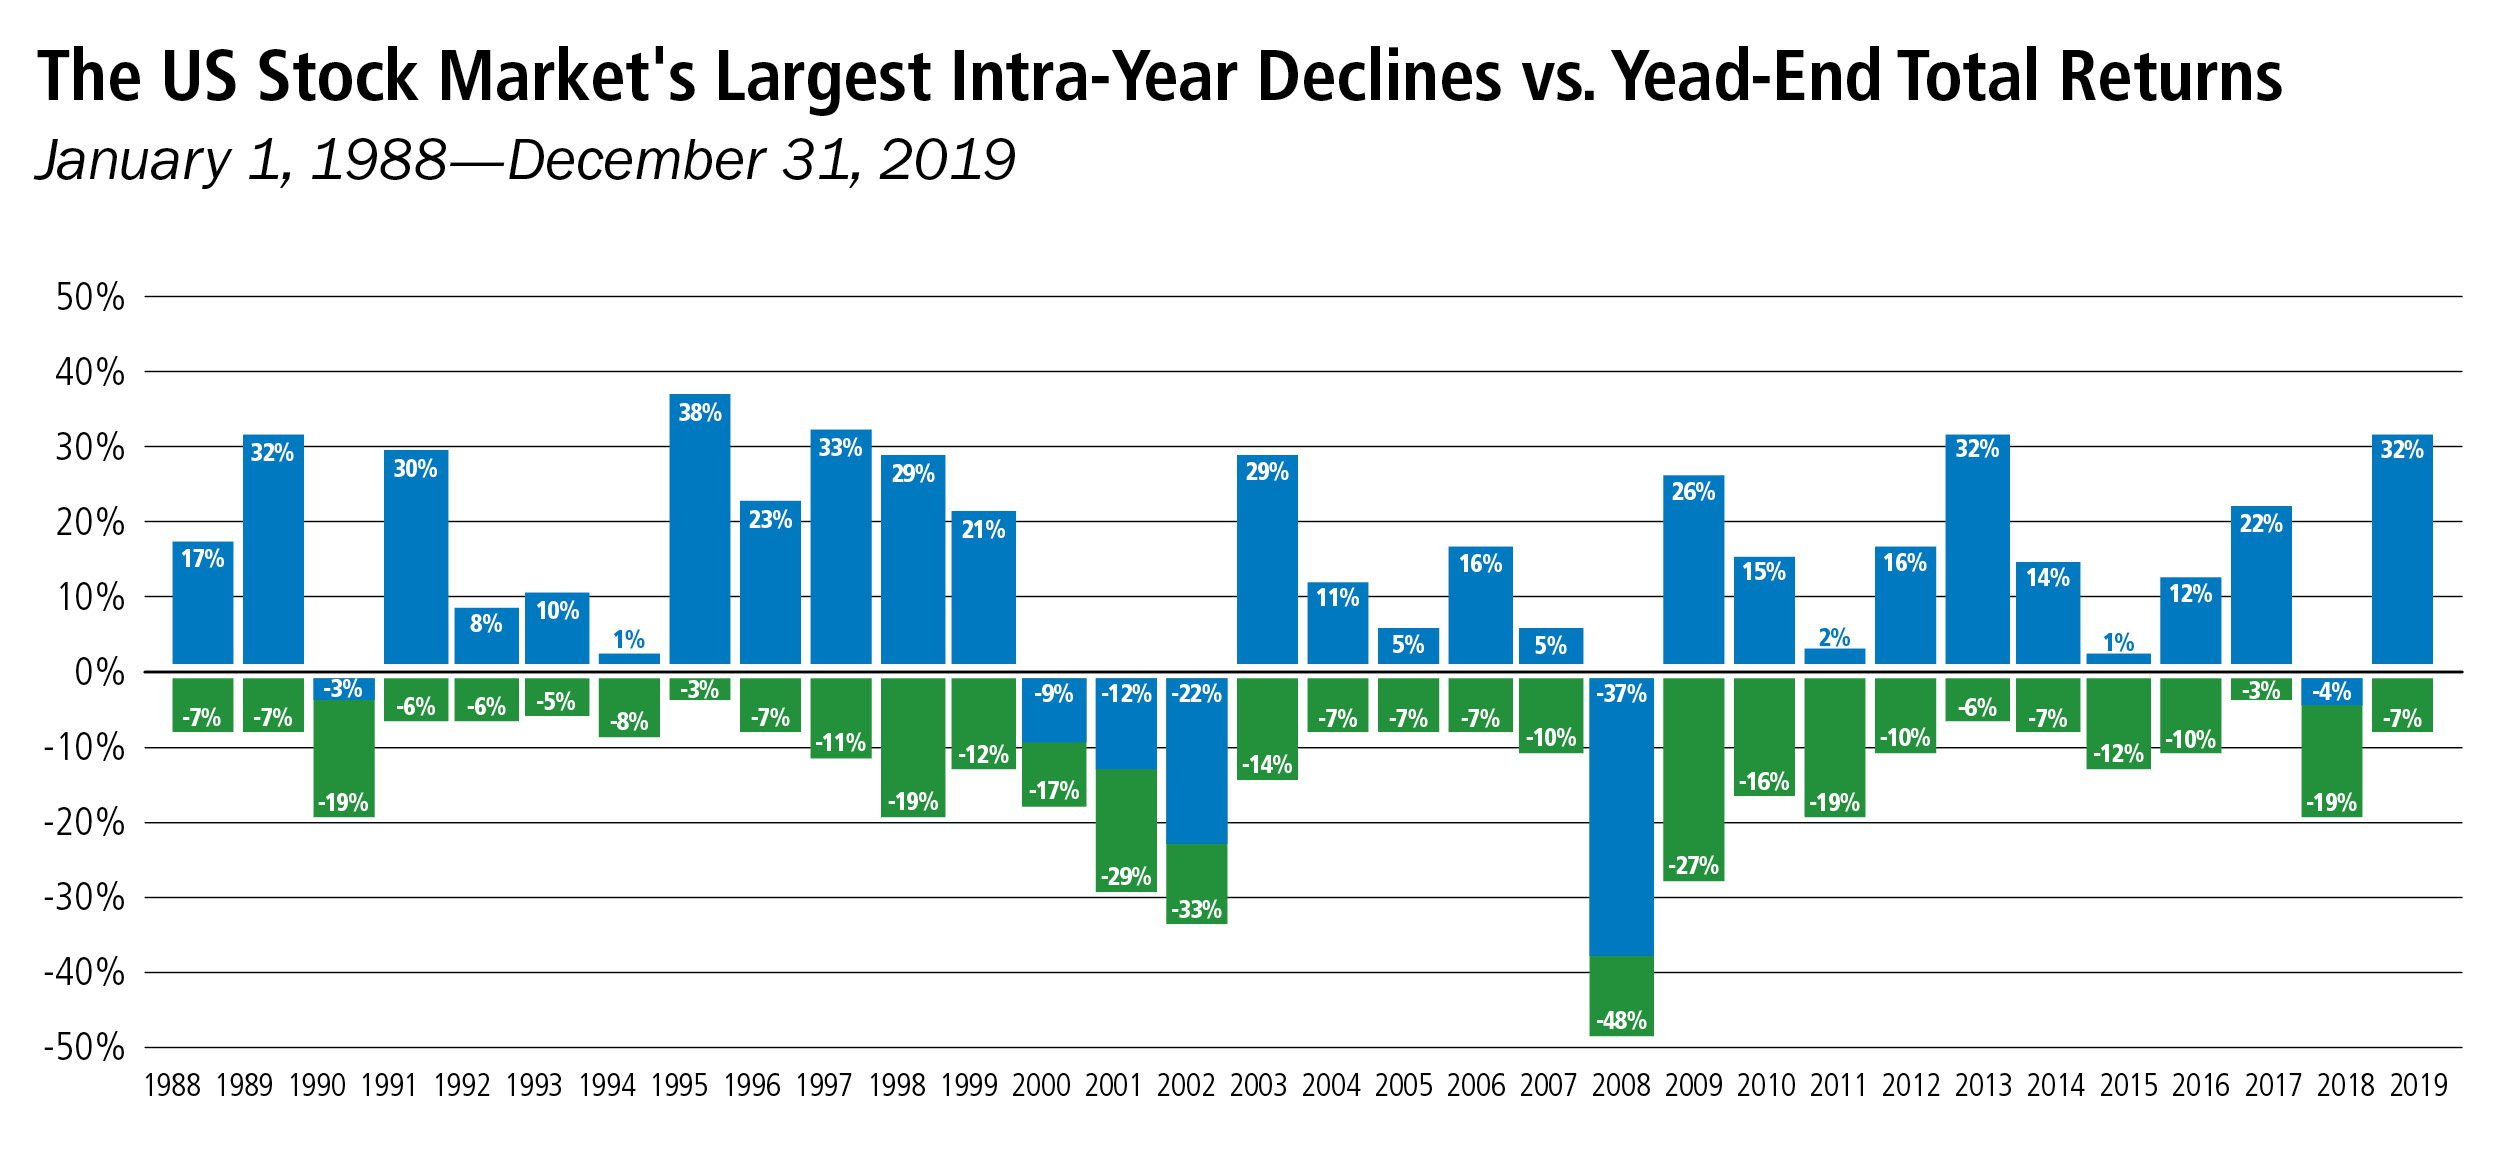 US-stock-market-intrayear-declines-year-end-returns